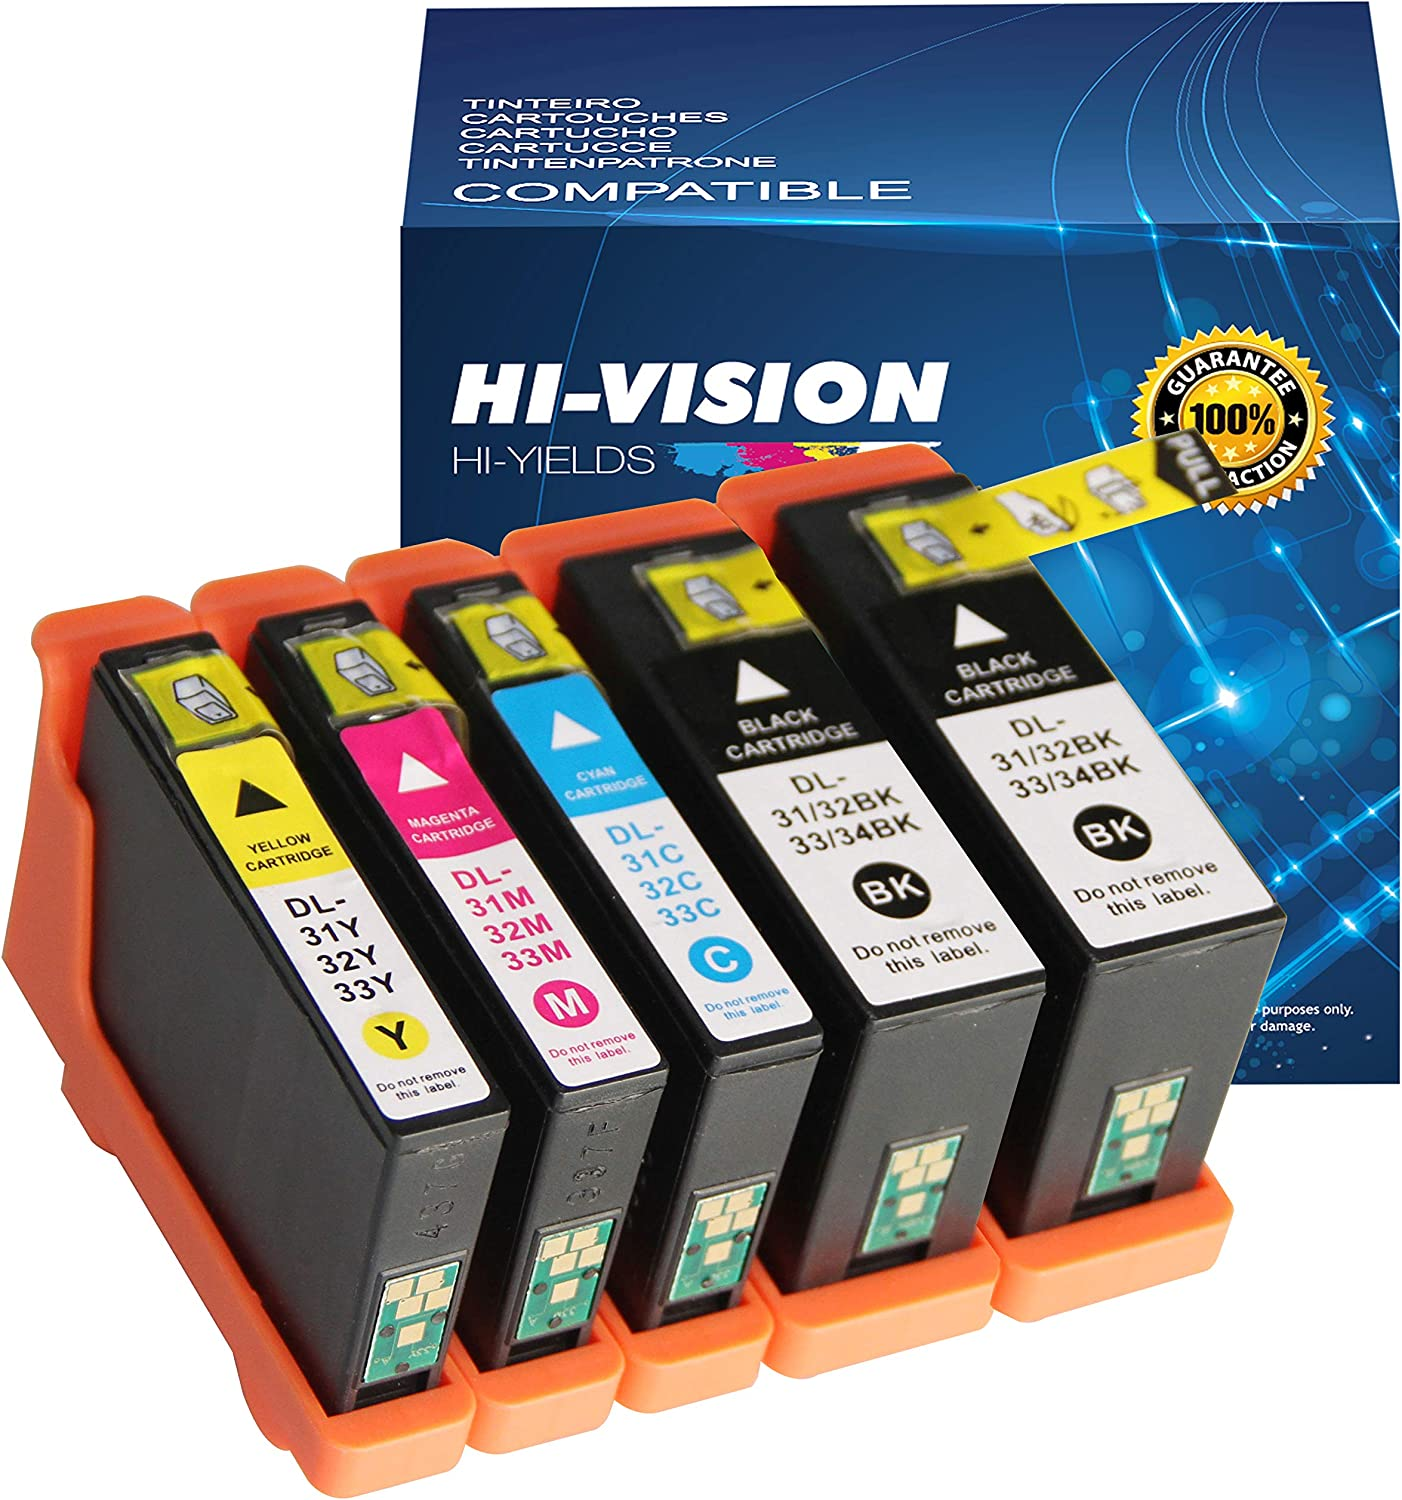 HI-Vision Compatible Ink Cartridge Replacement for Dell Series 31 32 33 34 to use with Dell V525W, V725W Printers All-in-One Wireless Inkjet Printer(2 Black, 1 Cyan, 1 Magenta, 1 Yellow)5 Pack